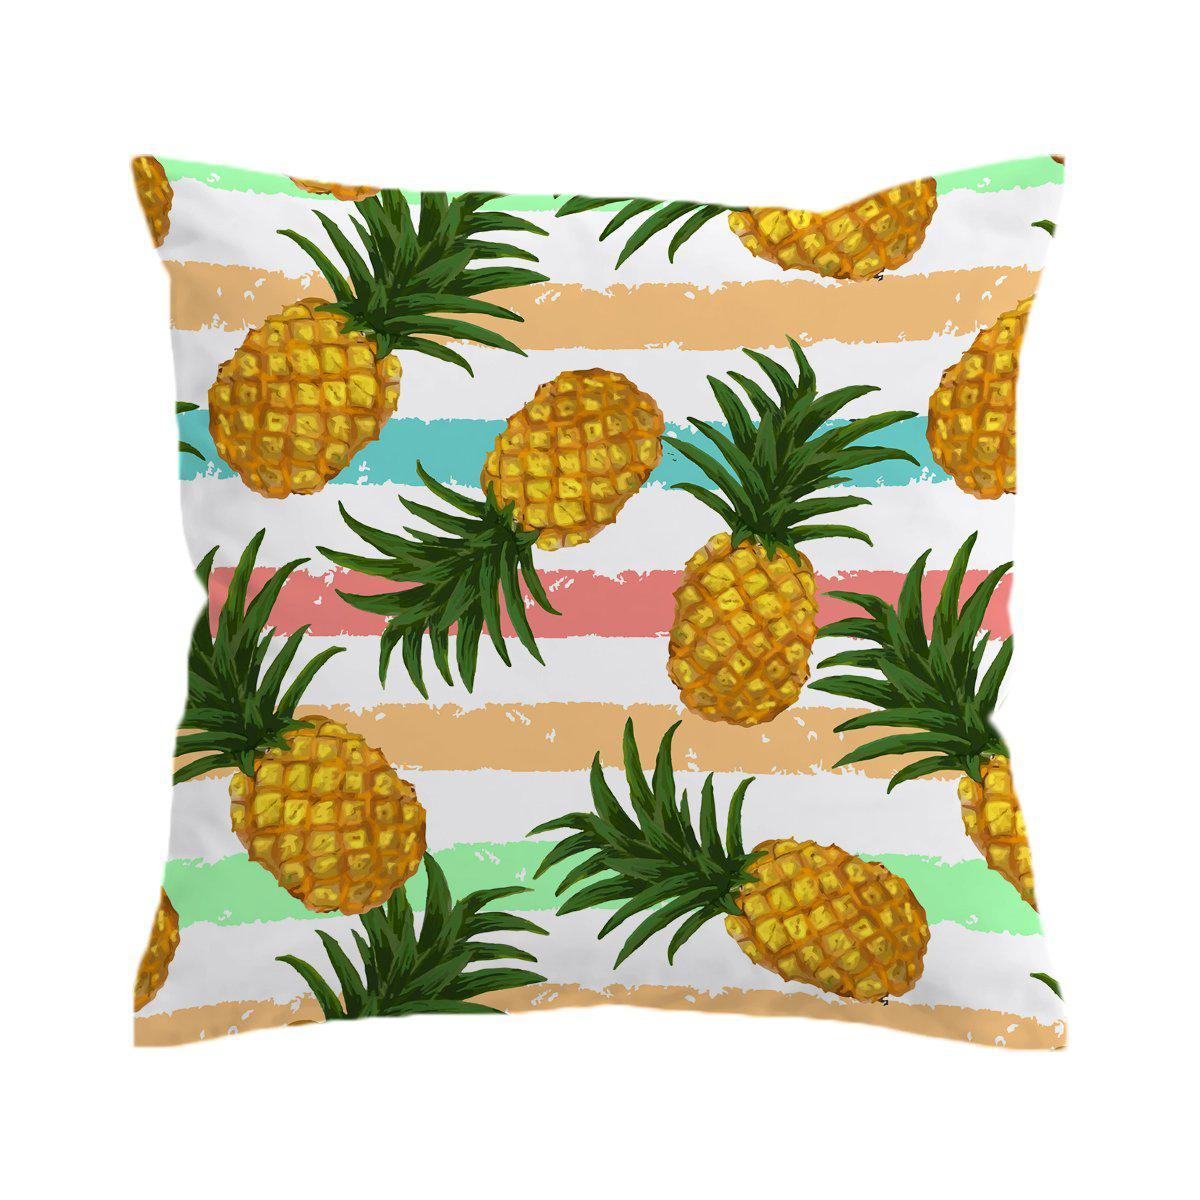 Pineapple Party Pillow Cover-Coastal Passion